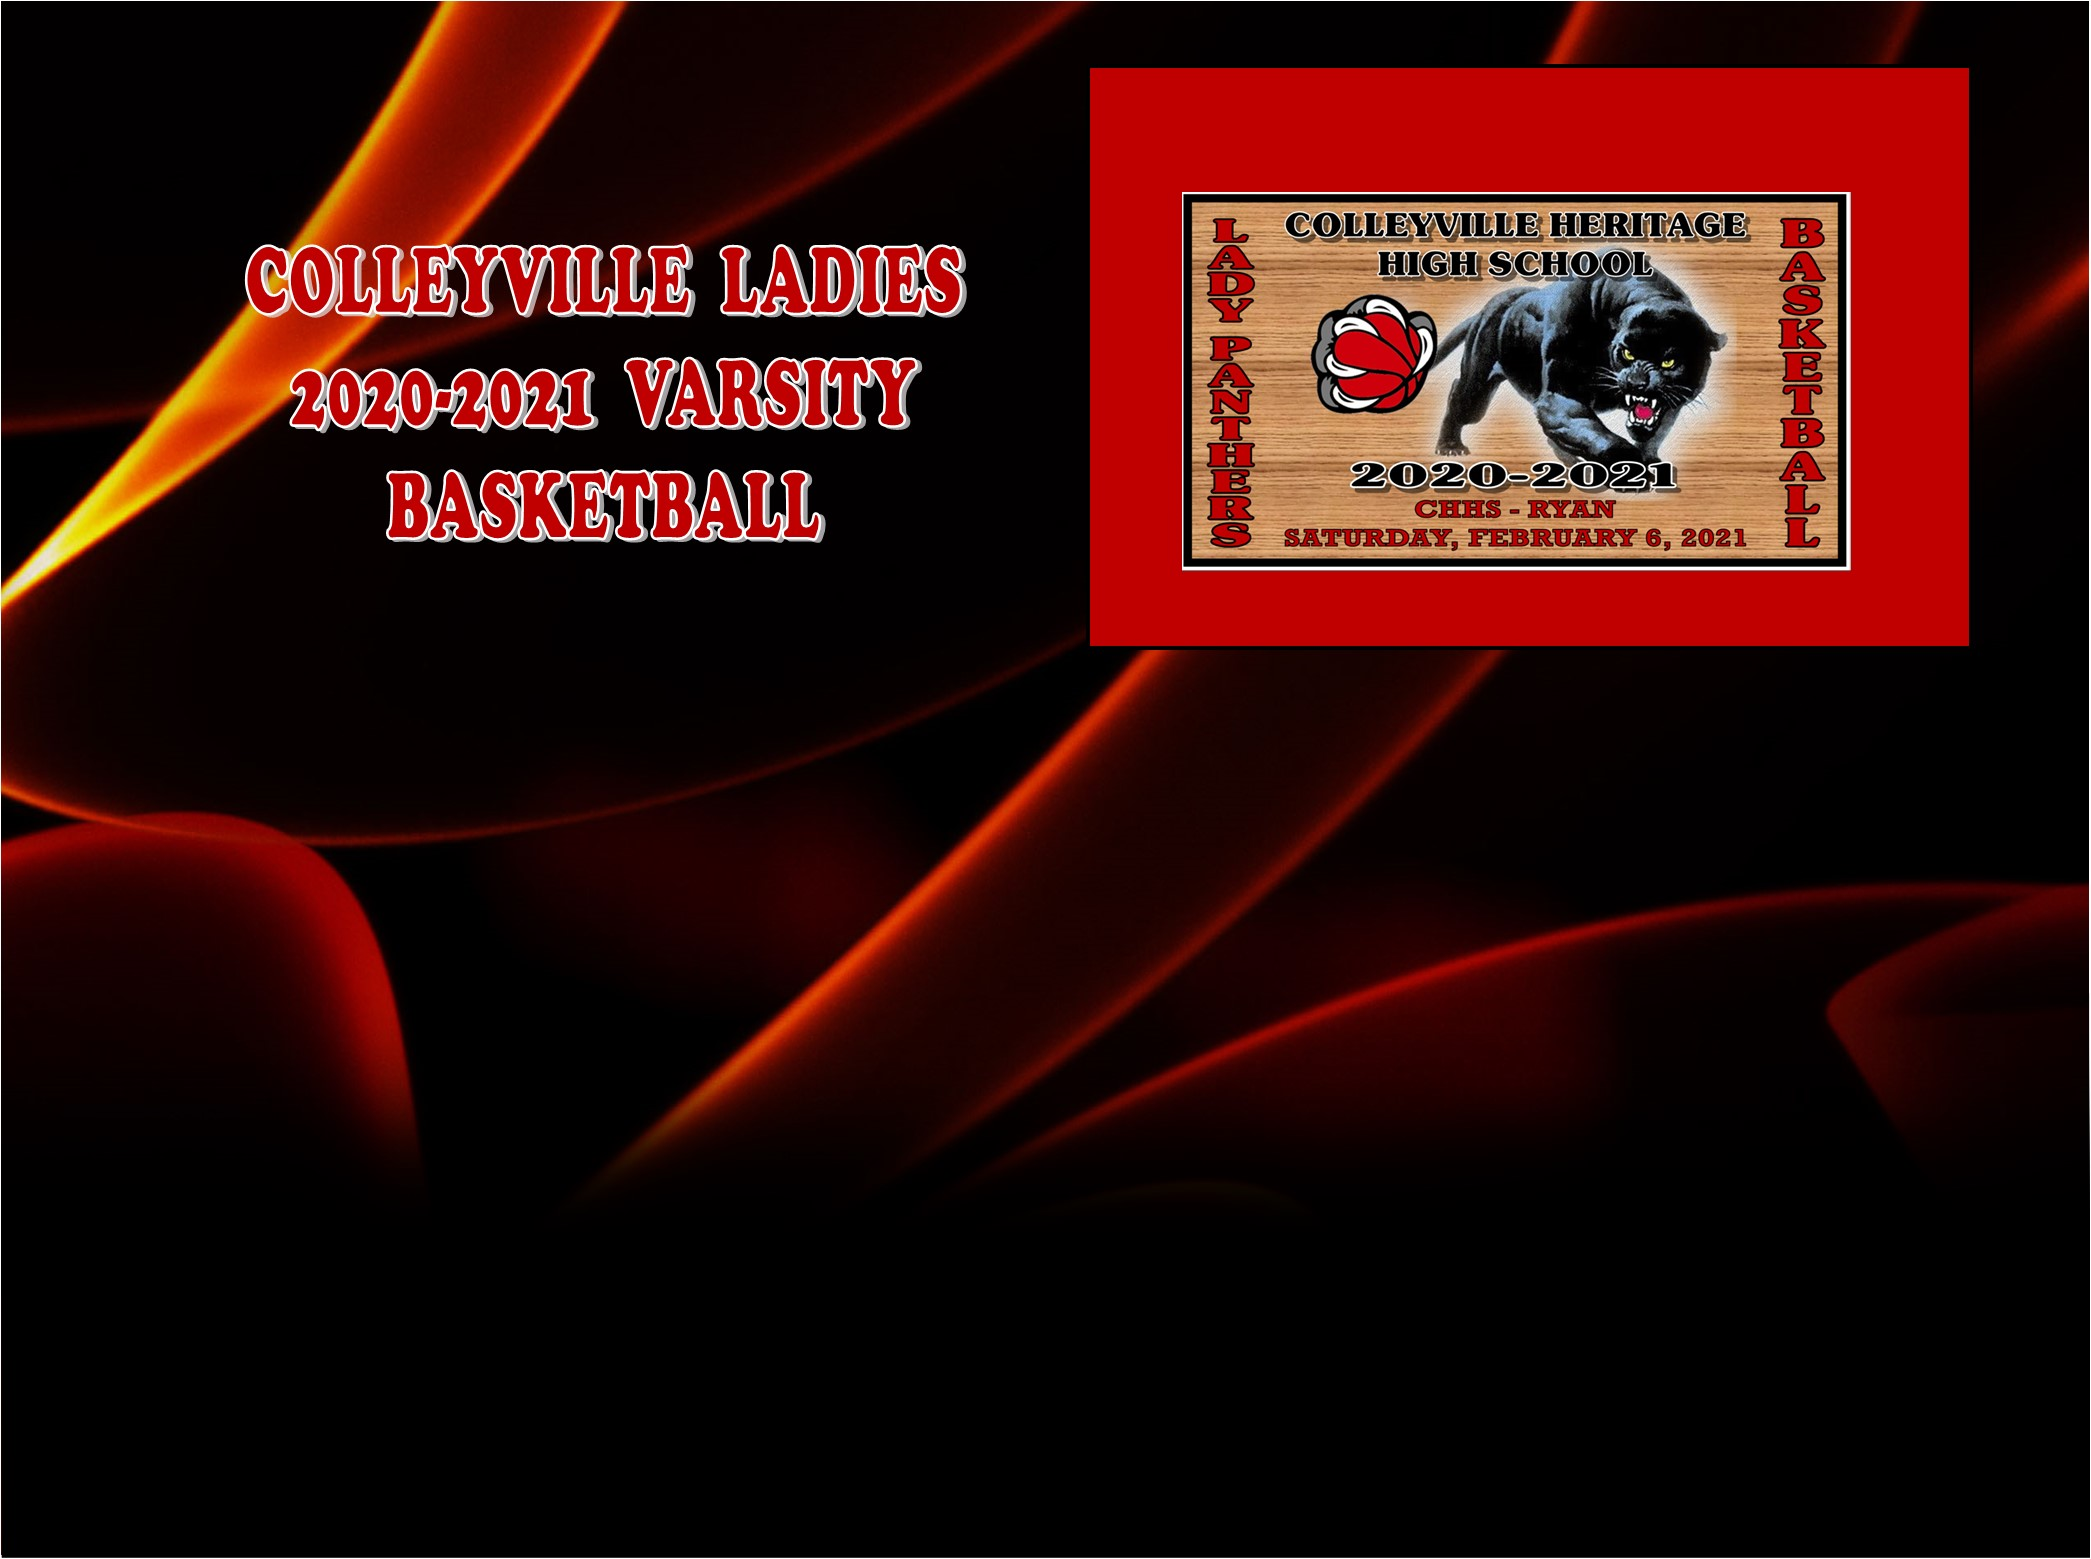 GCISD Ladies Basketball: Colleyville Panthers Defeated By Richland Royals 41-44